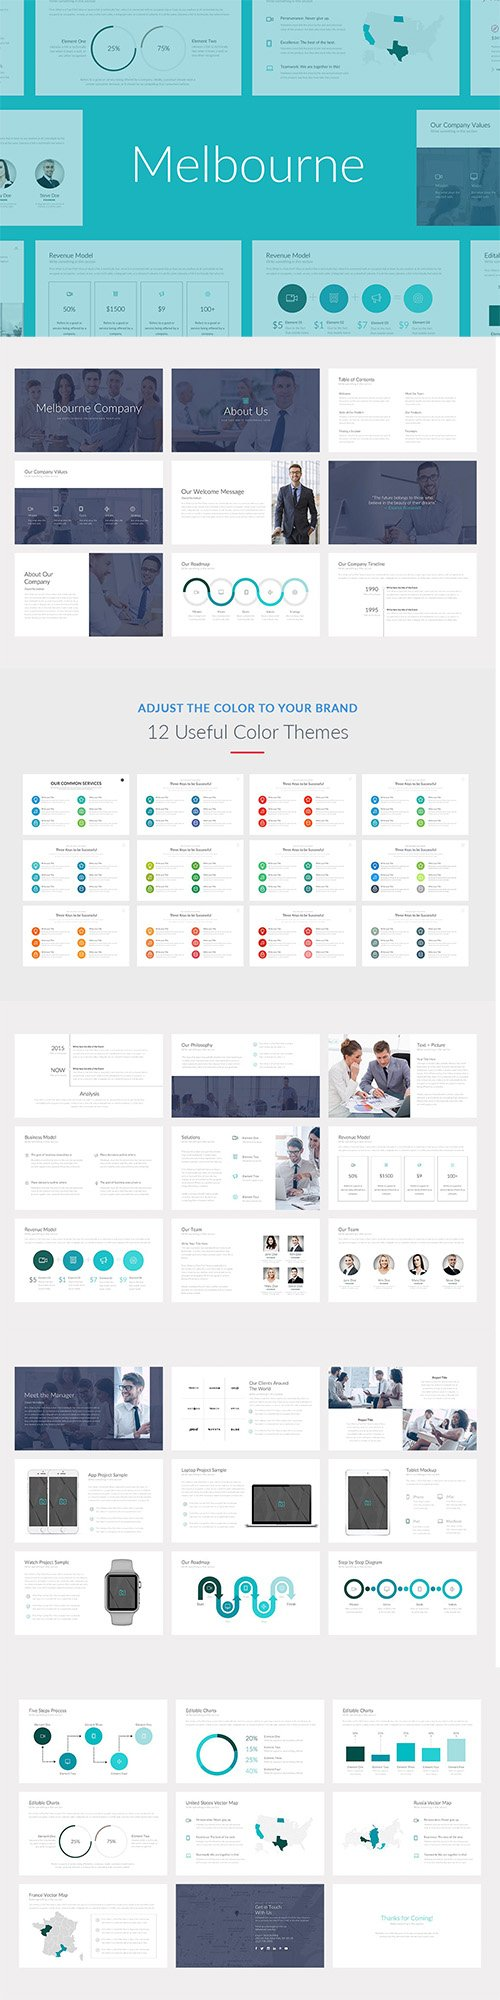 Melbourne Professional PowerPoint, Keynote and Google Sliders Template